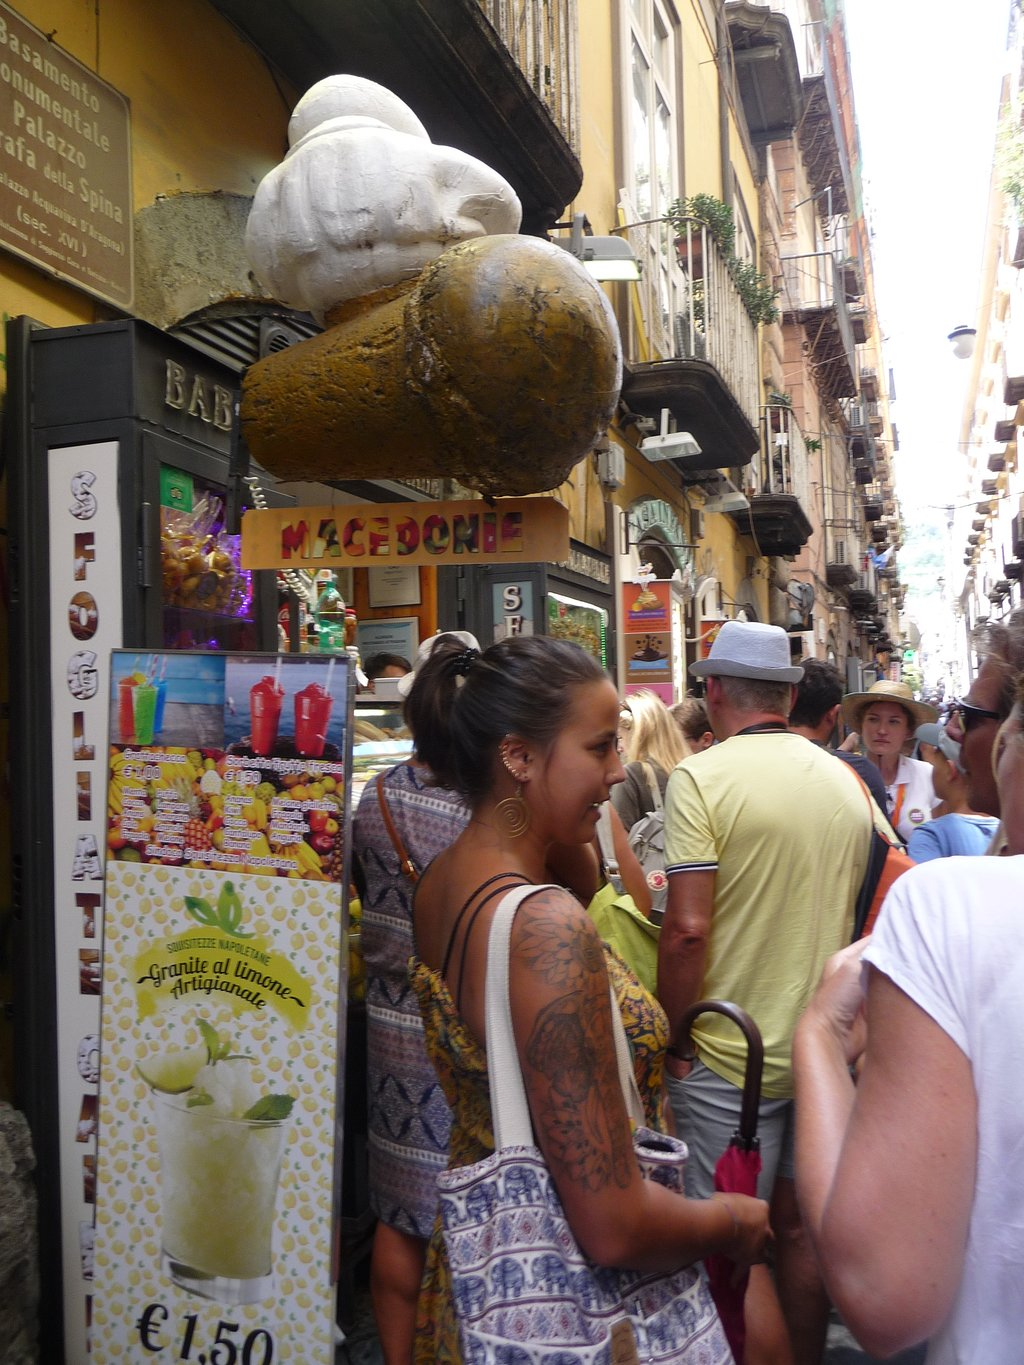 Free Tour Taste of Naples' History and Limoncello